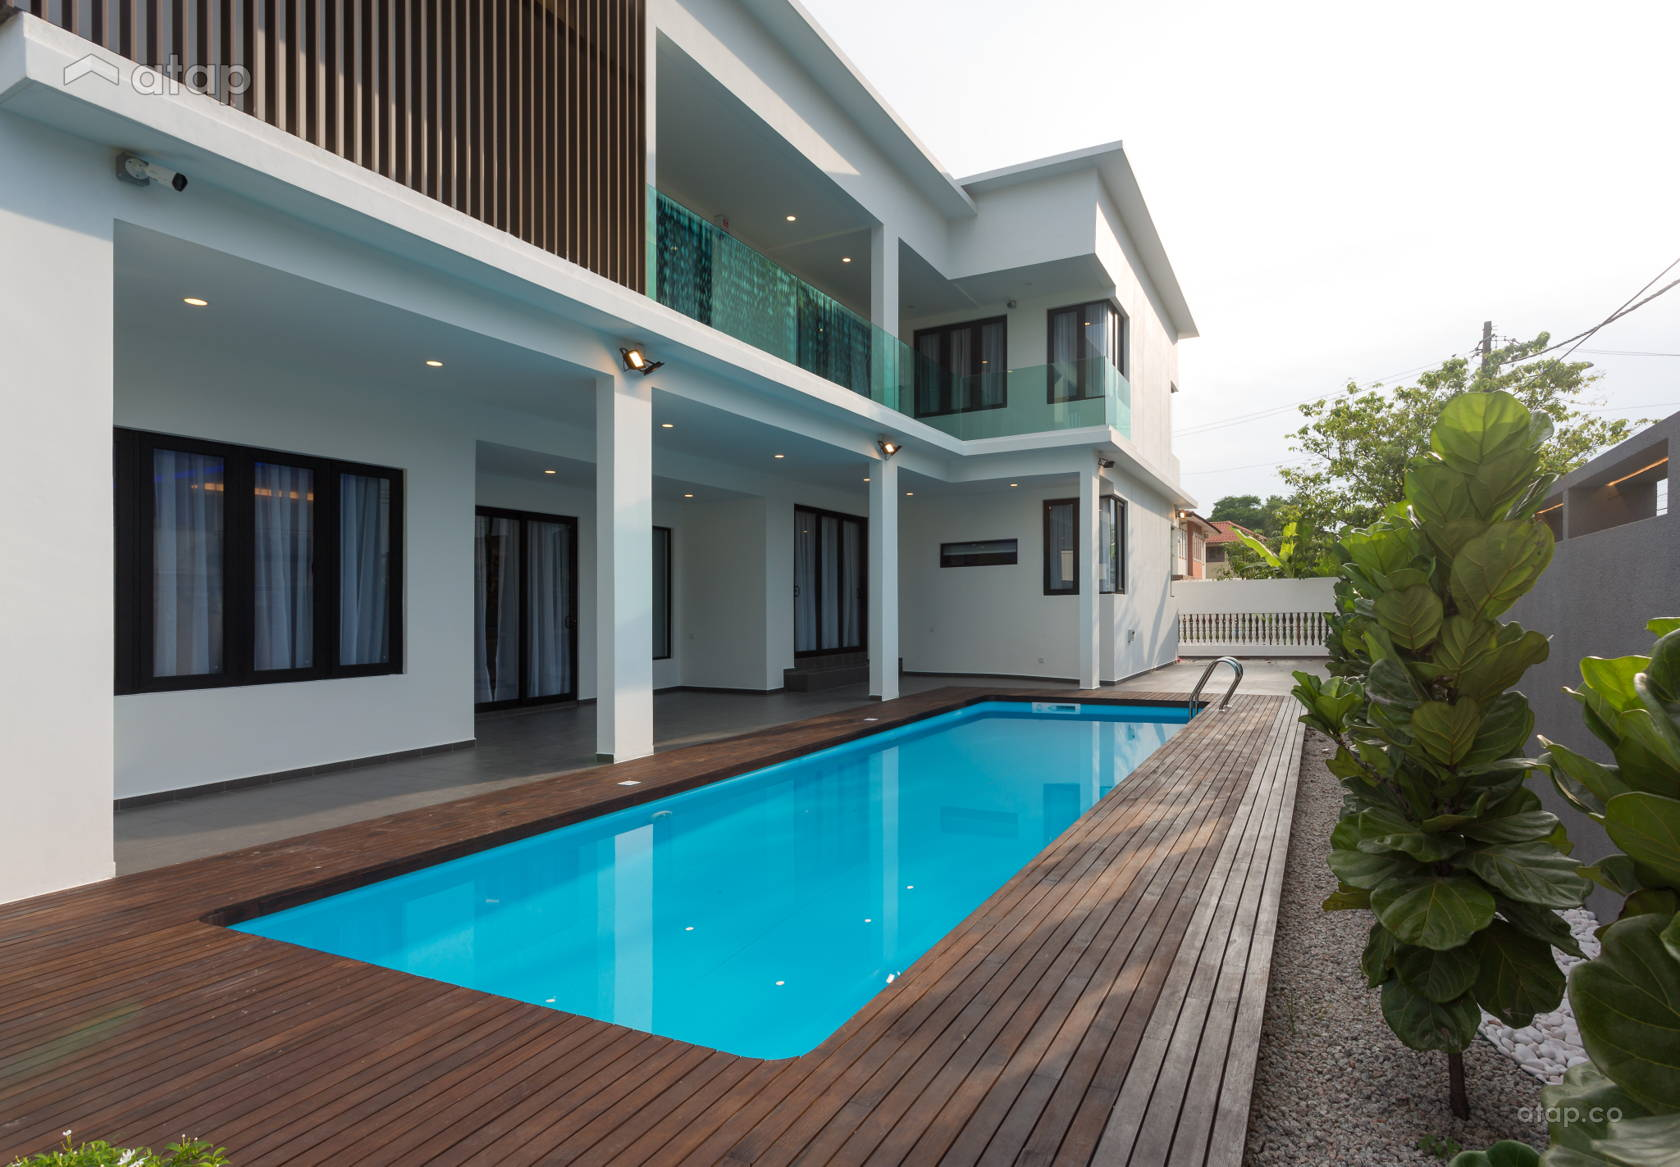 These Malaysian Homes Feature Dreamy Swimming Pools That Help Beat The Heat Atap Co